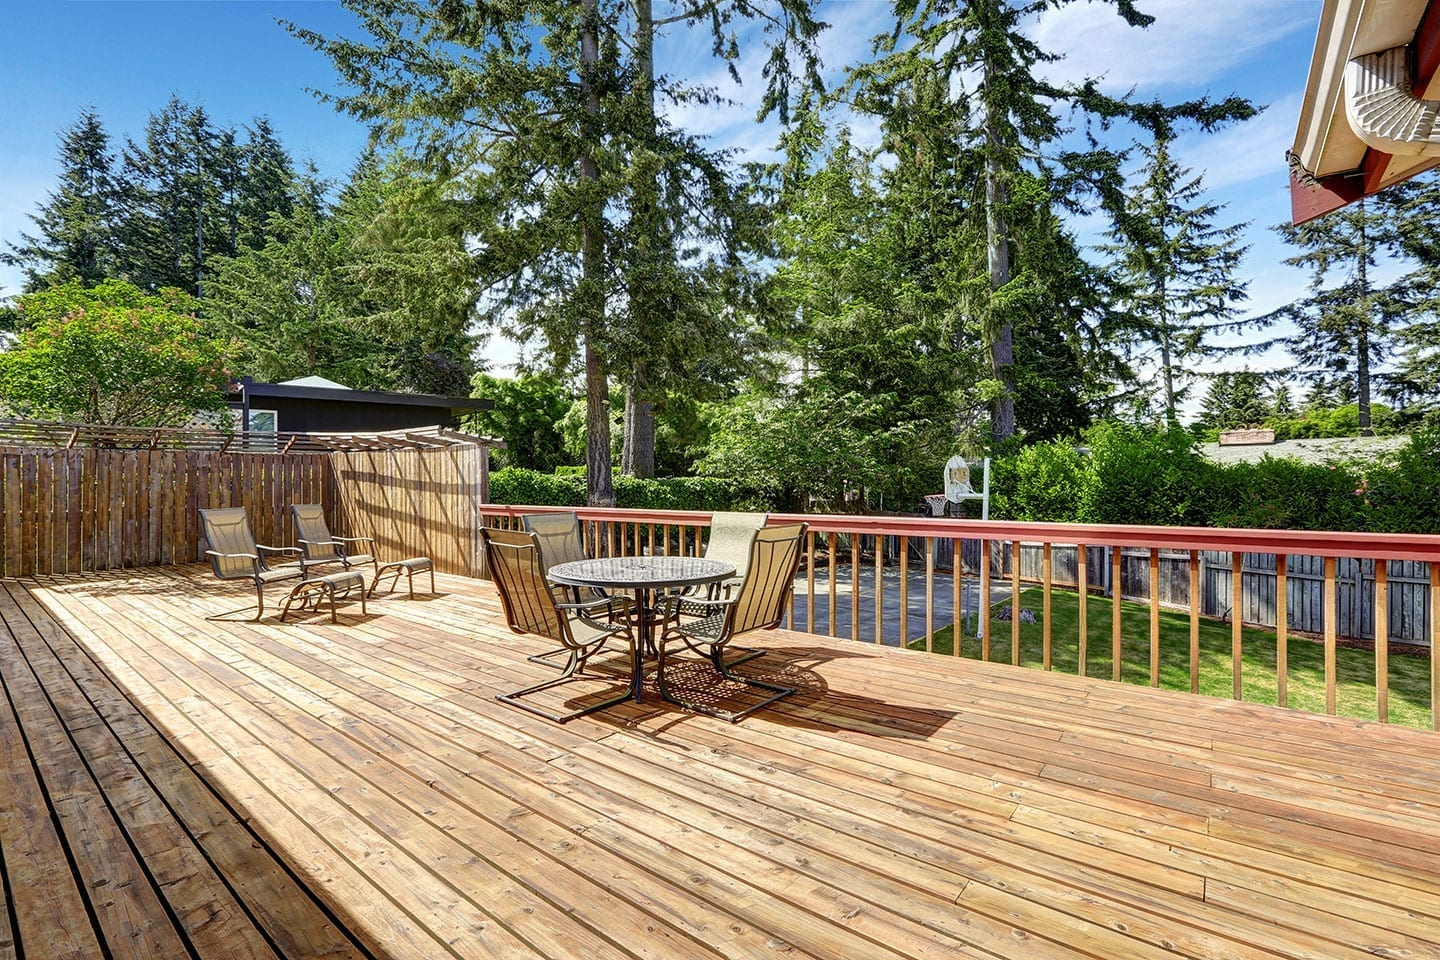 Porch Vs Deck Which Is The More Befitting For Your Home: Downsides Of Cheap Decks, Patios, & Porches